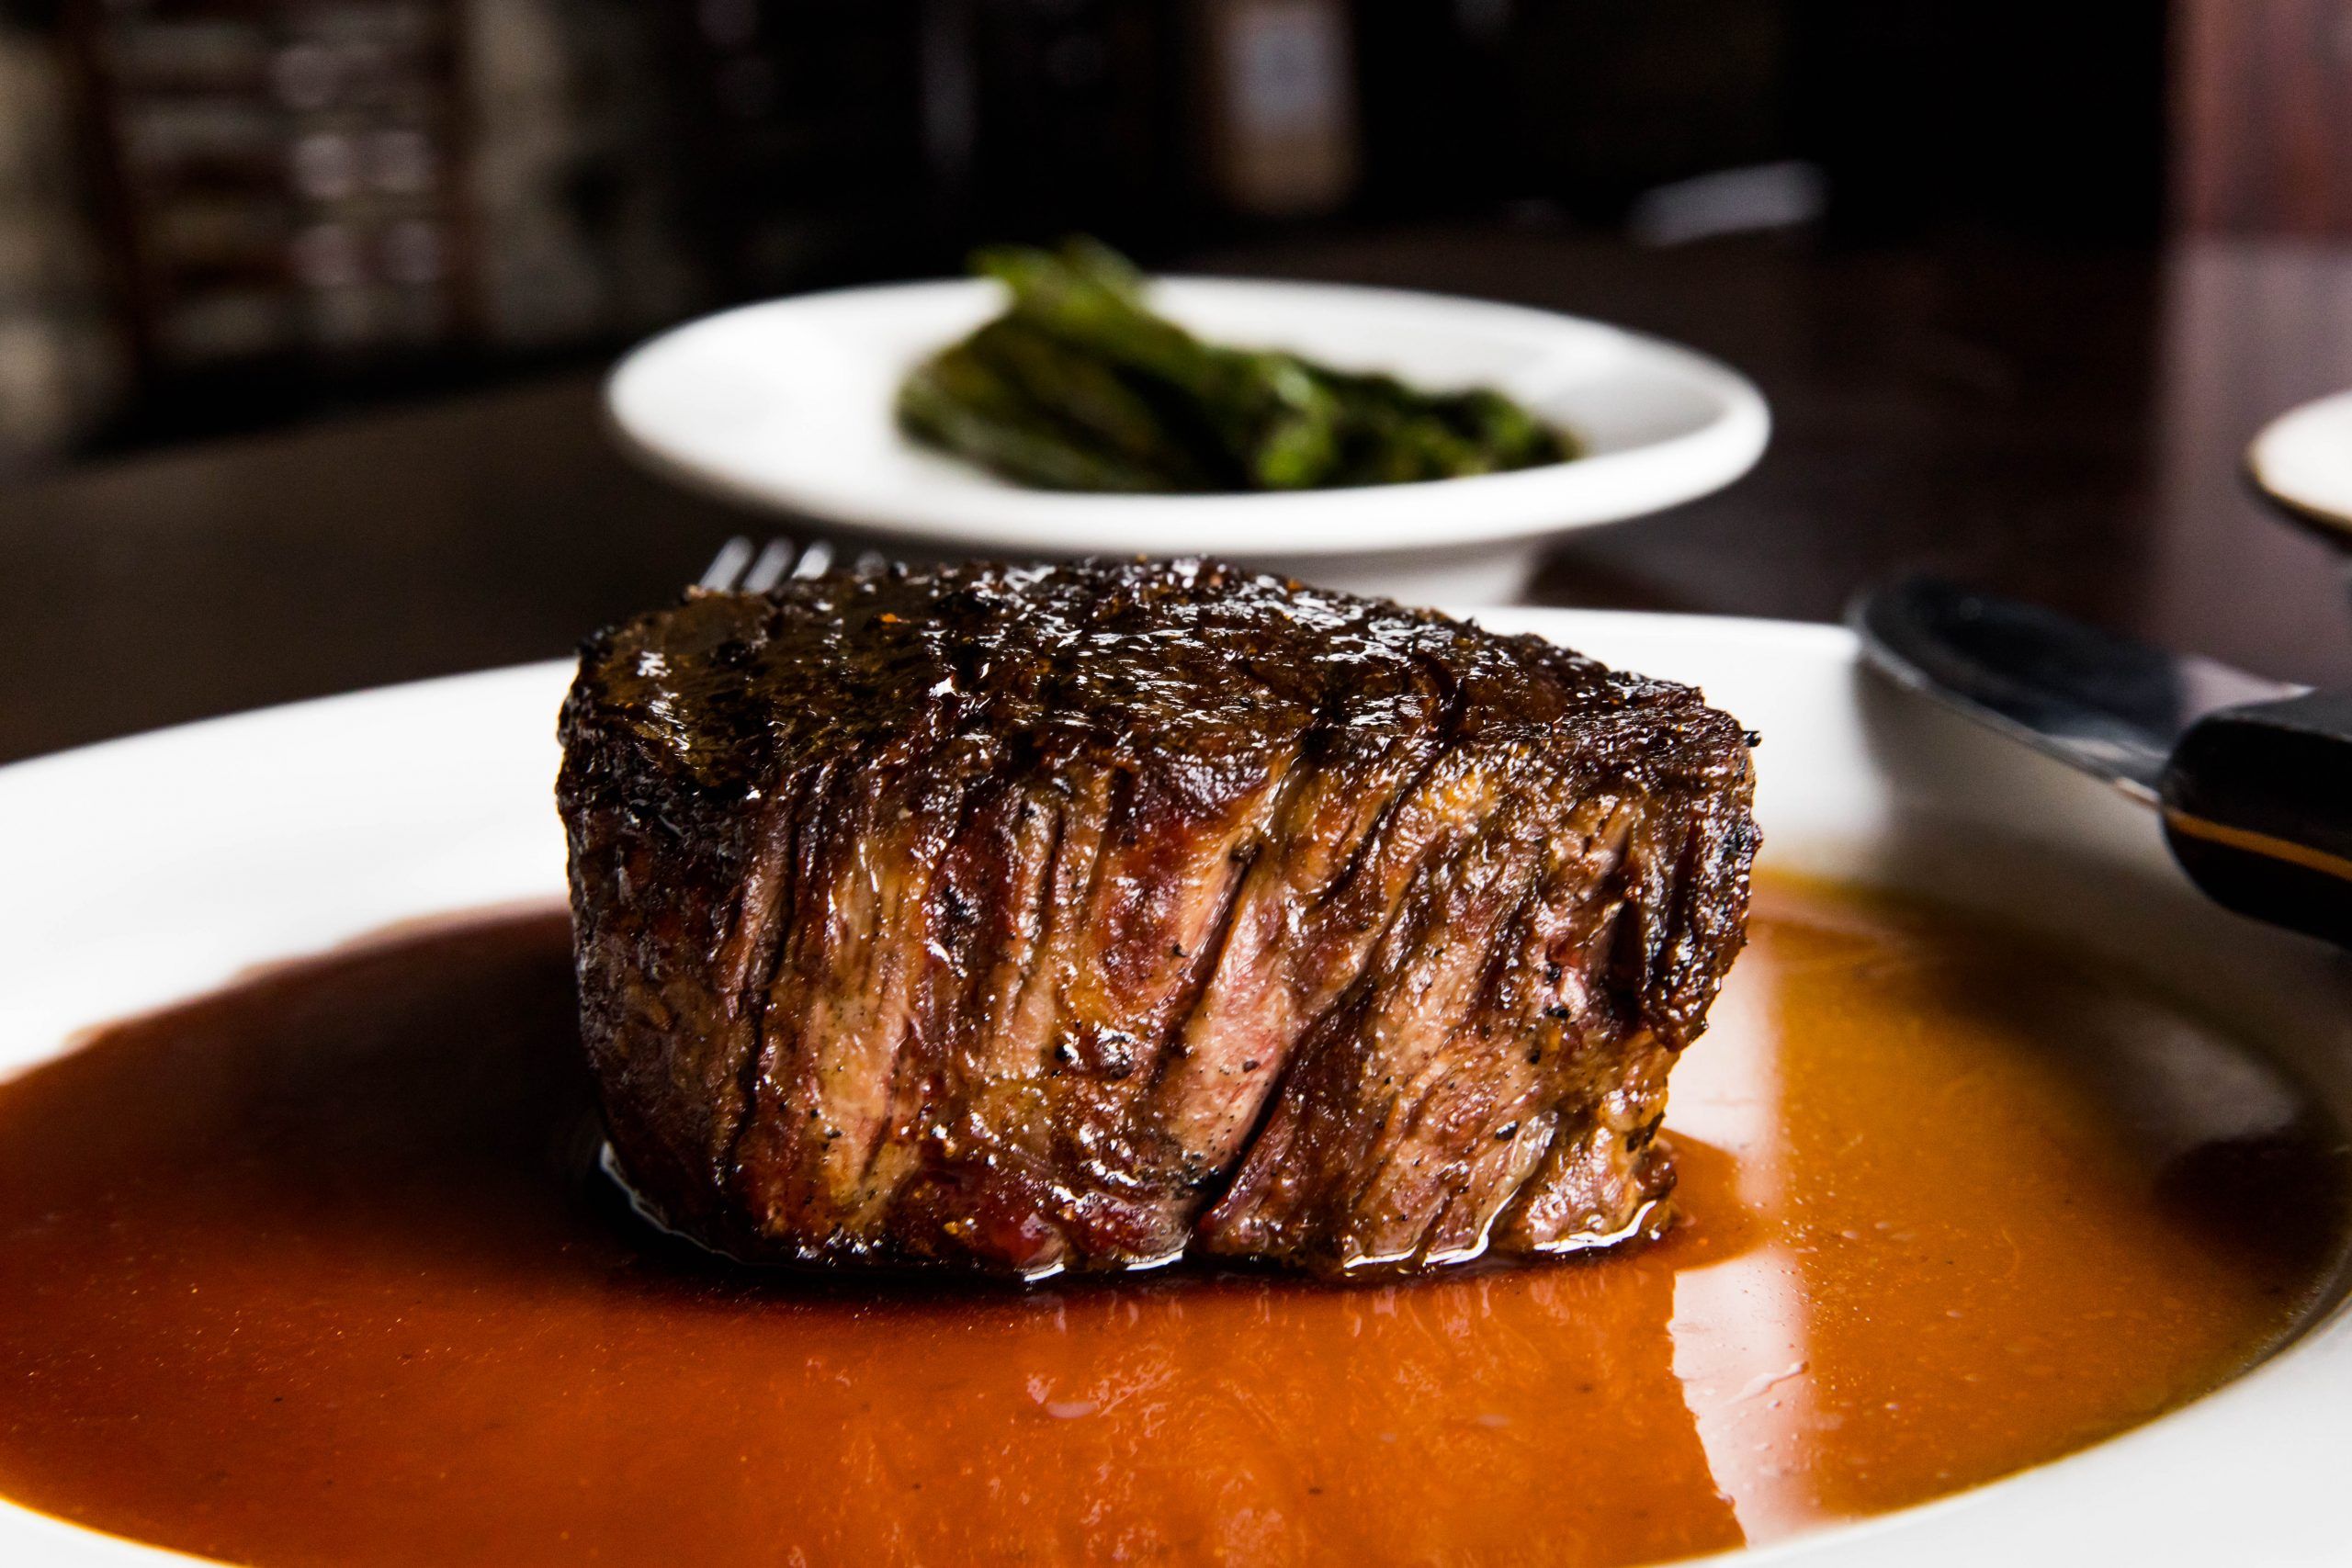 A large filet mignon sitting in au jus